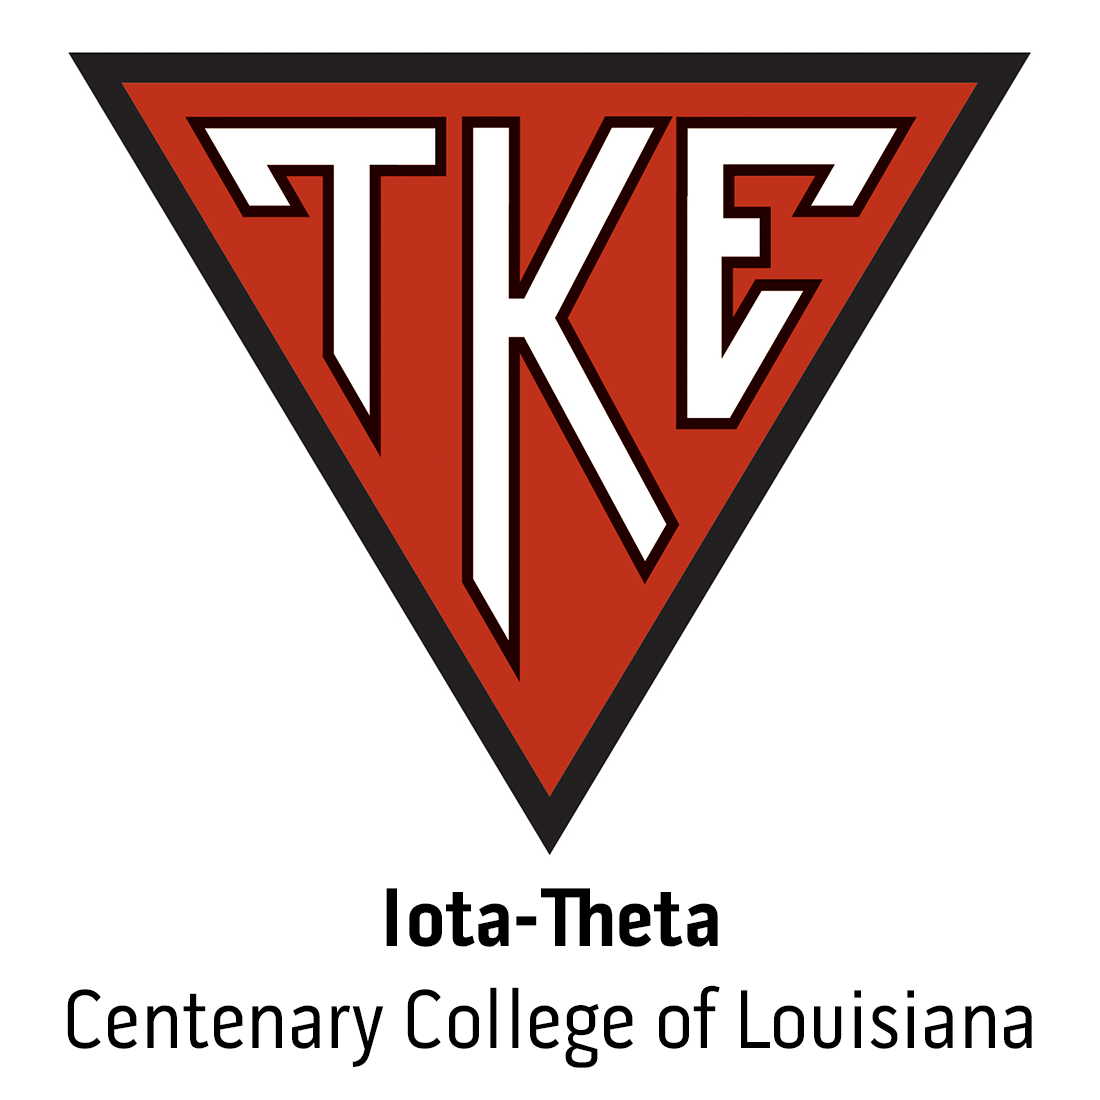 Iota-Theta Chapter at Centenary College of Louisiana